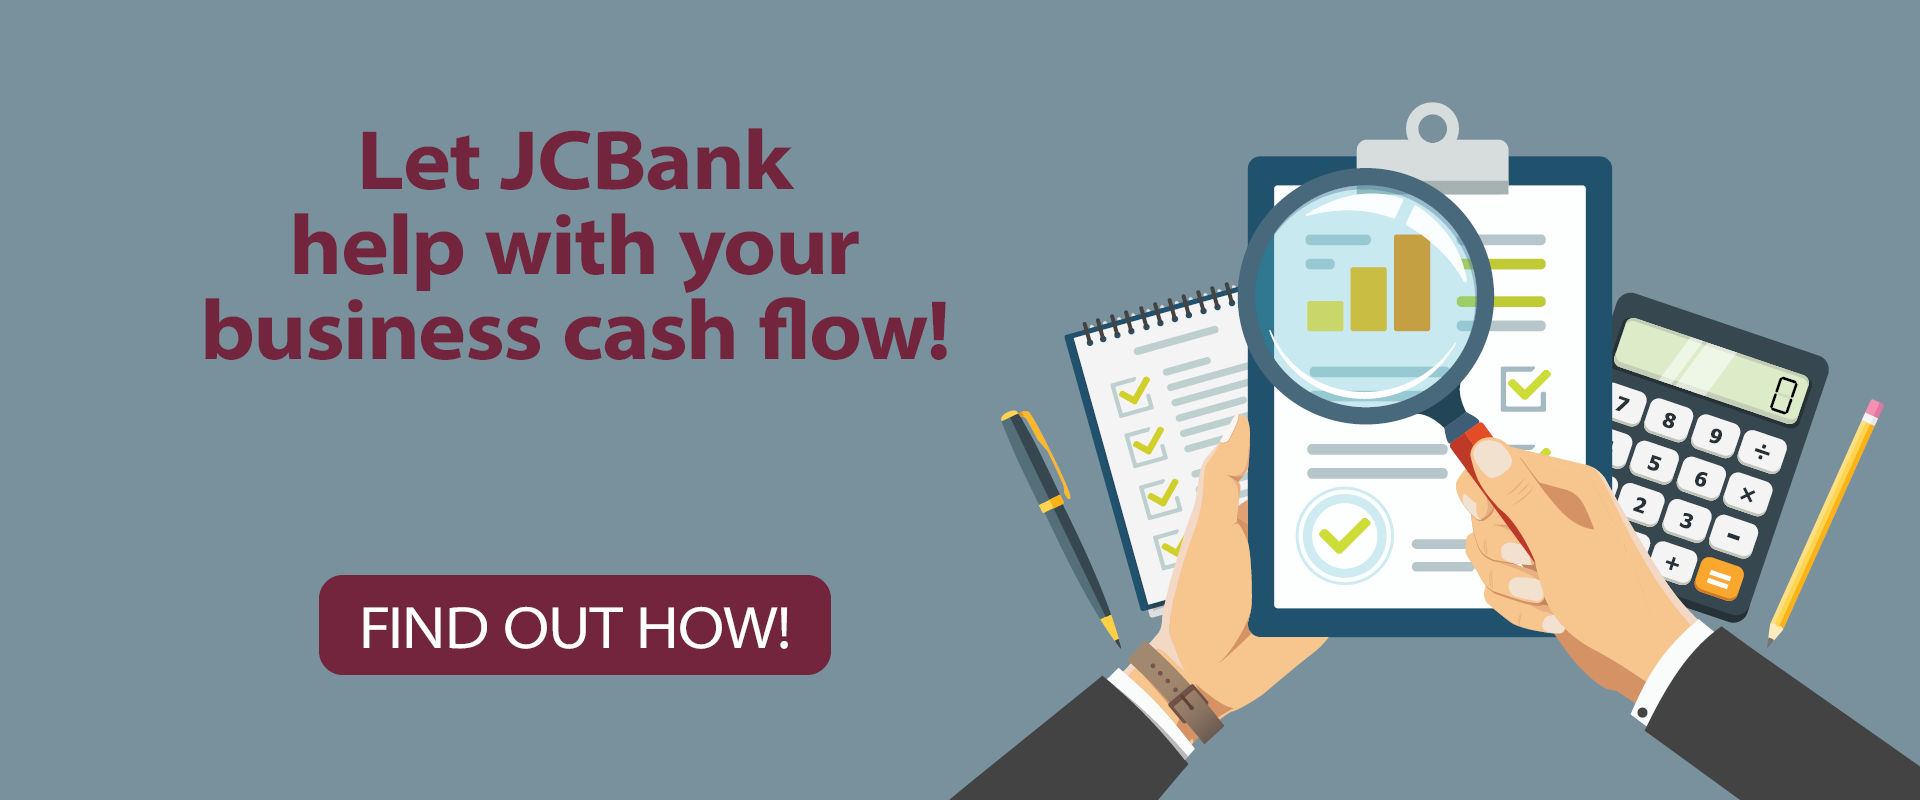 Let JCB help with your business cash flow!